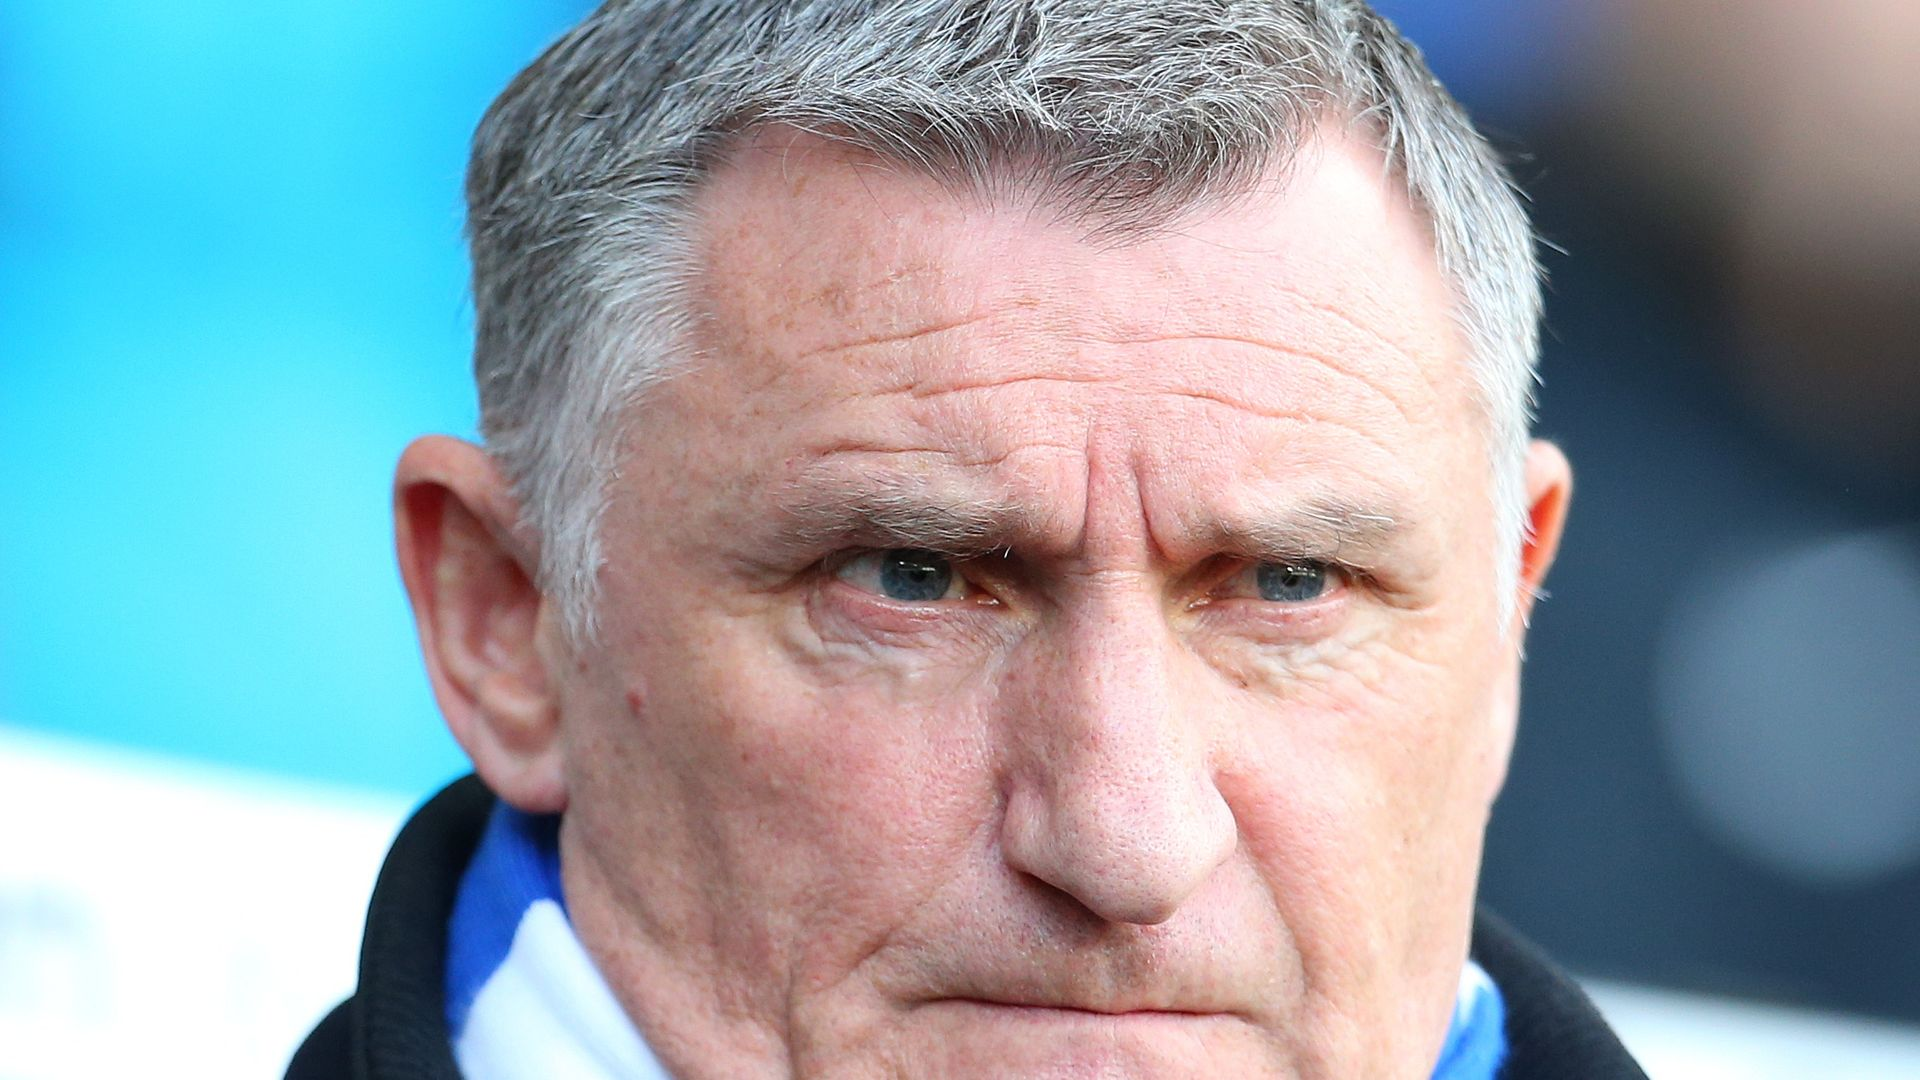 Mowbray casts doubt on how football can return